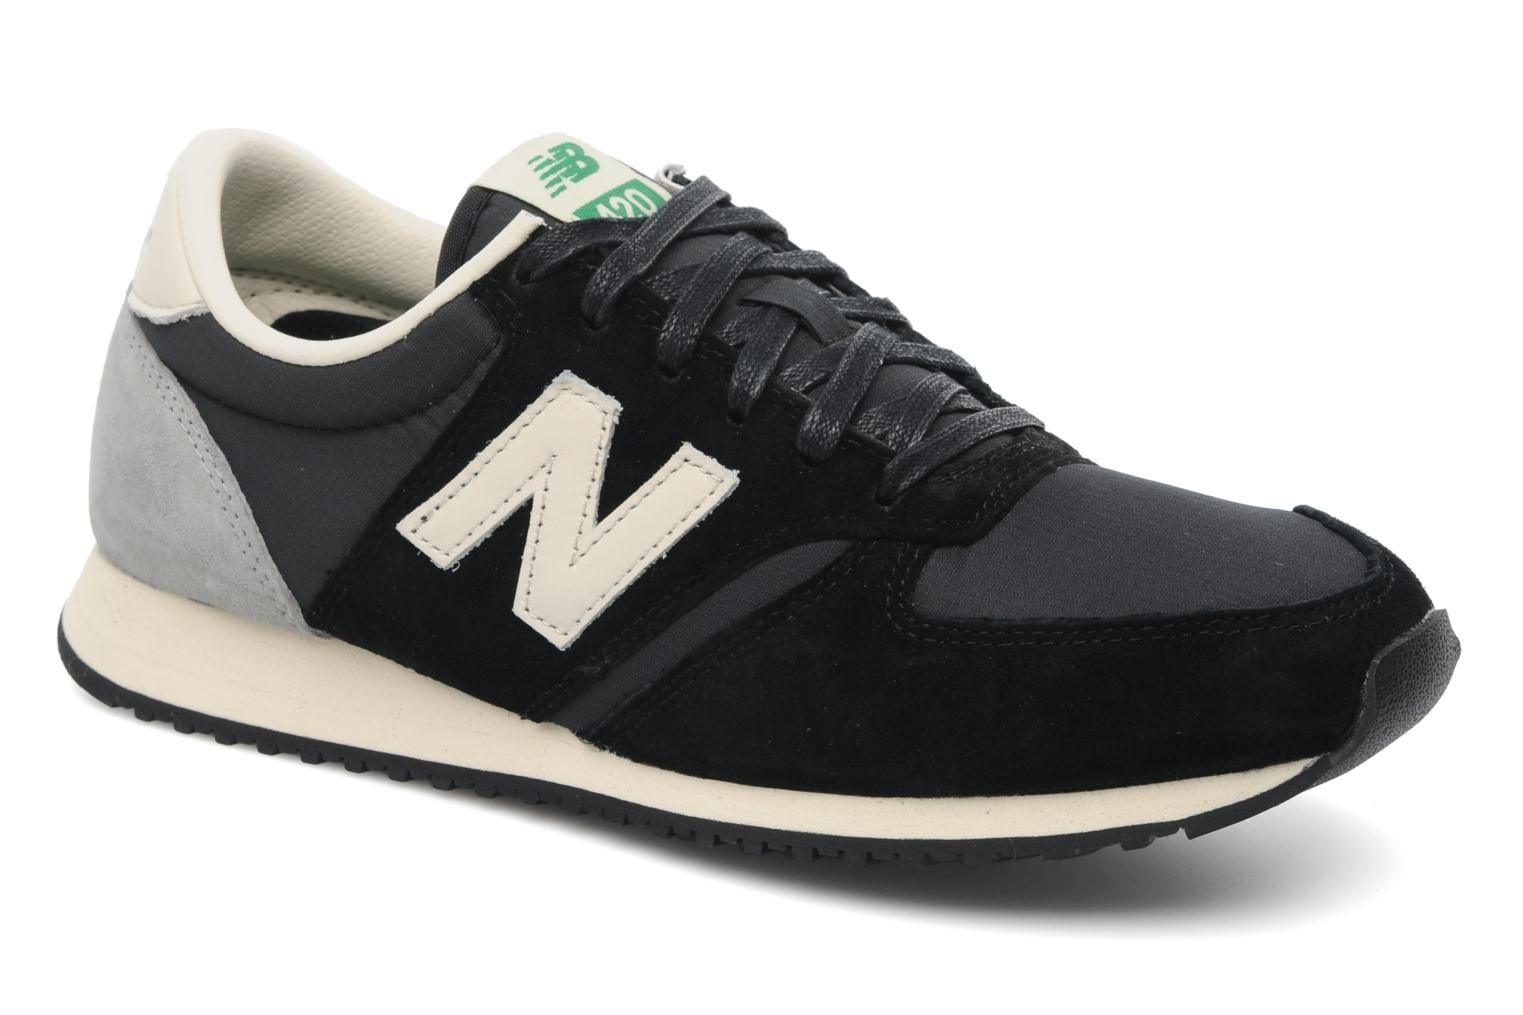 new balance u420 mens shoes